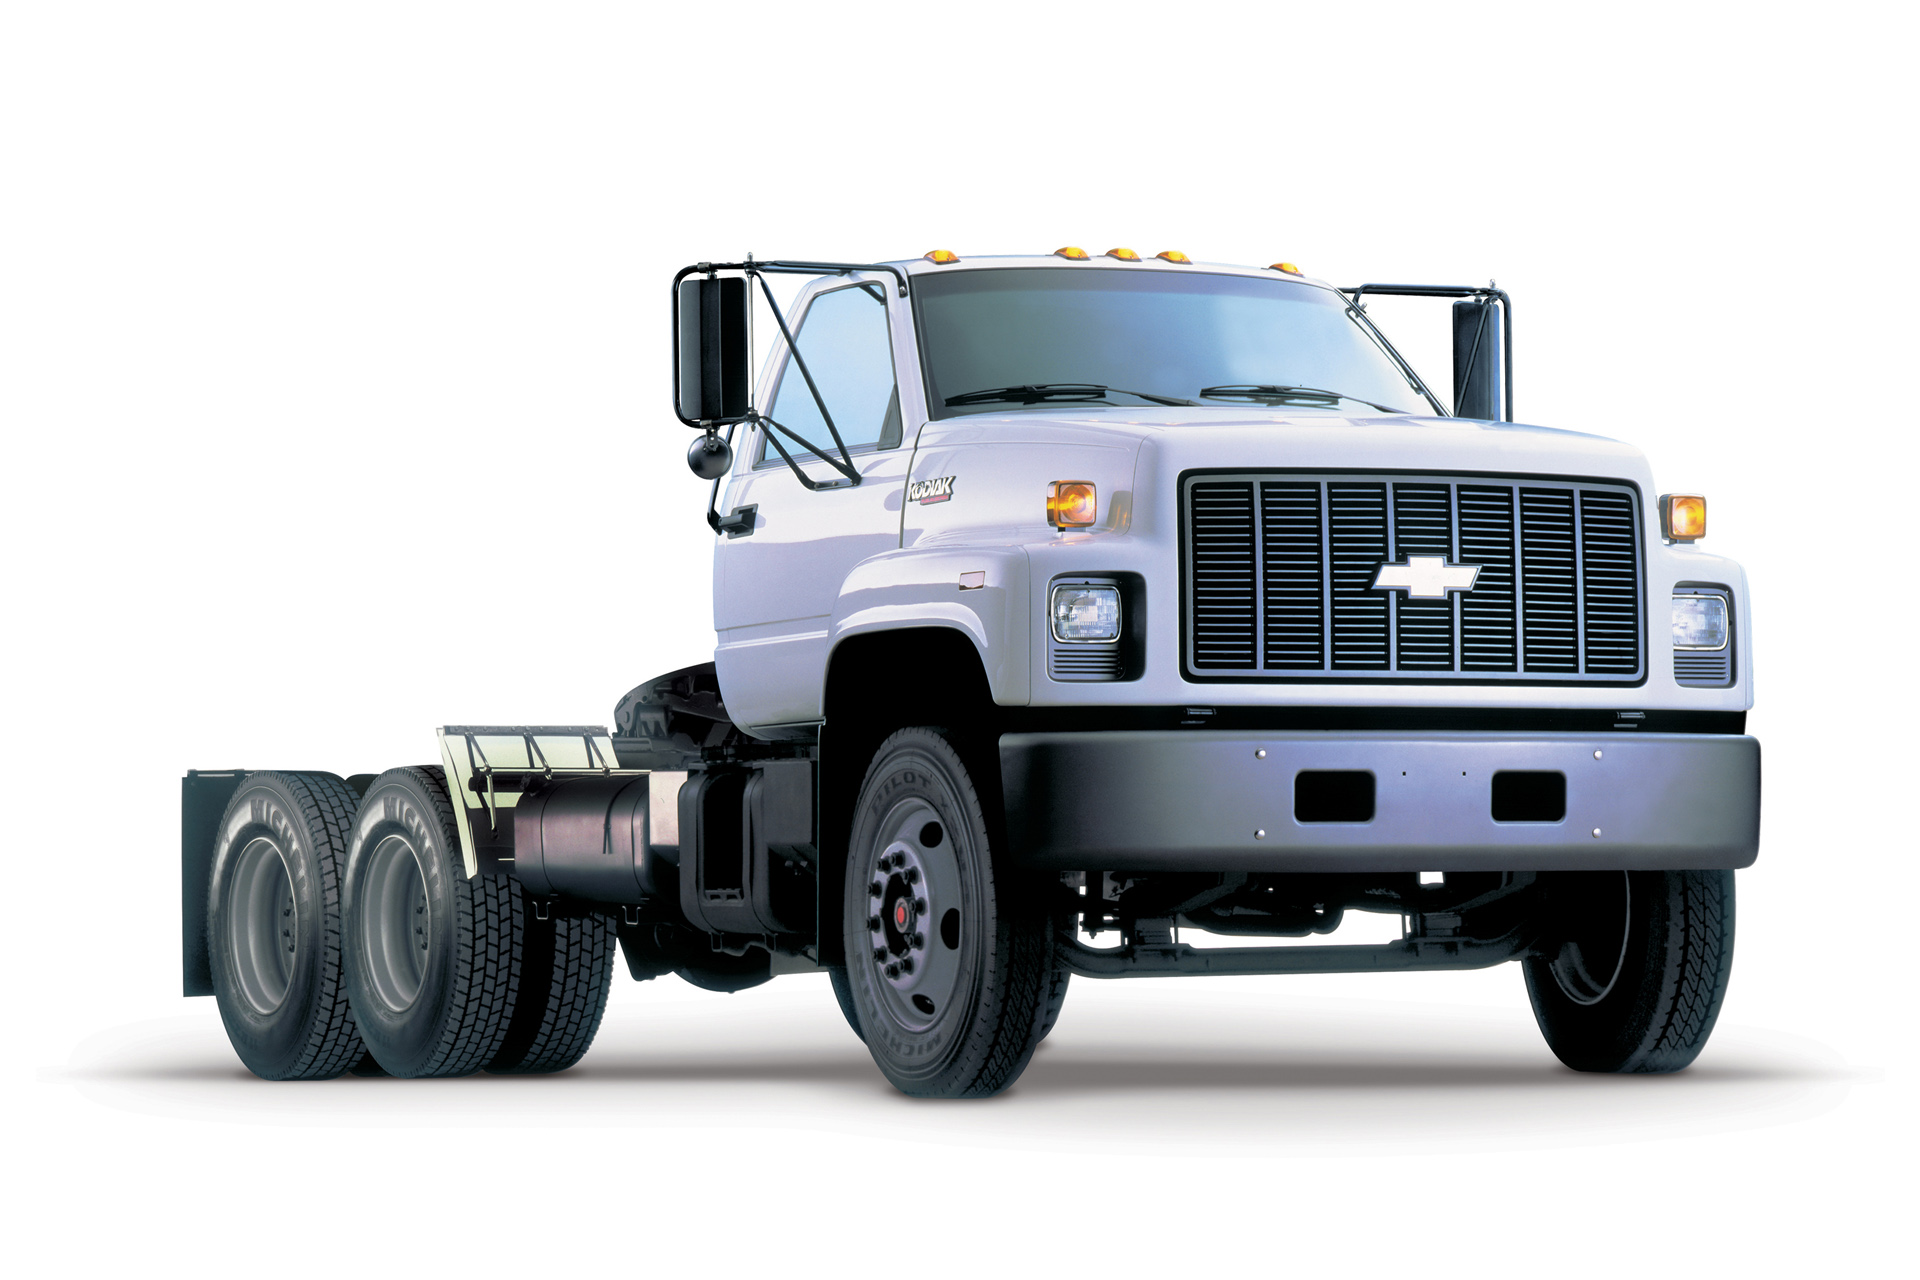 Chevrolet C8500 photos - PhotoGallery with 2 pics ...